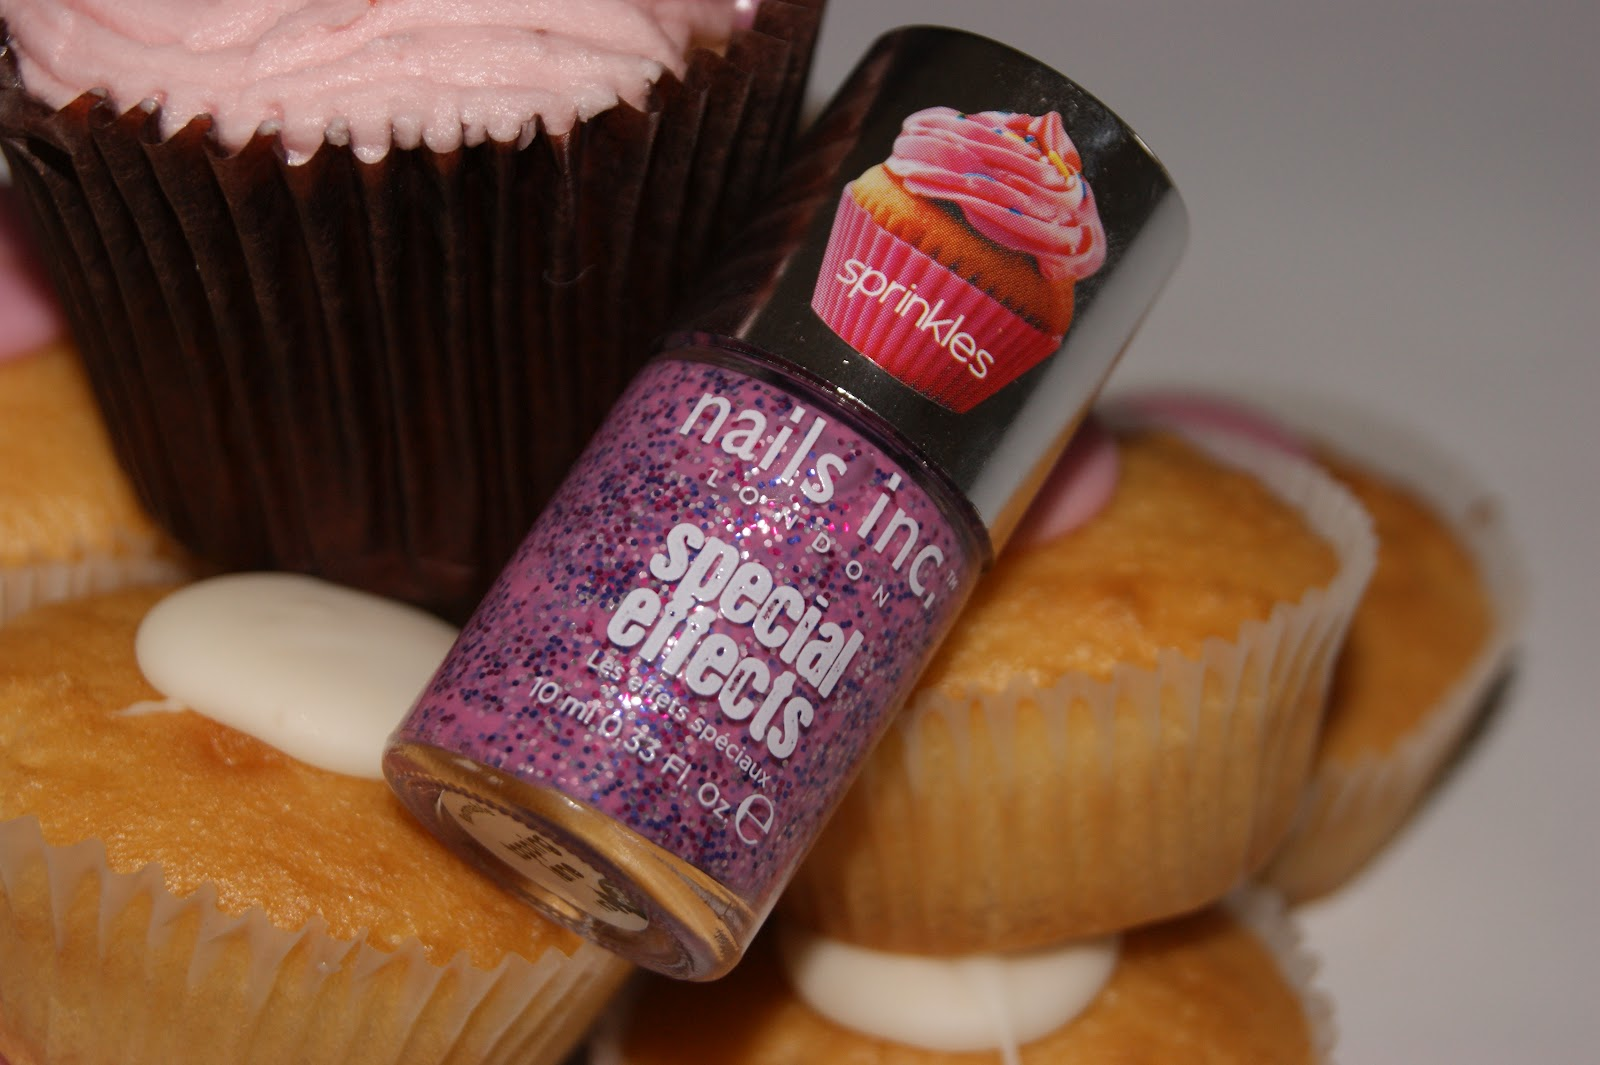 Nails Inc Special Effects Sprinkles Nail Polish In Topping Lane Review The Sunday Girl